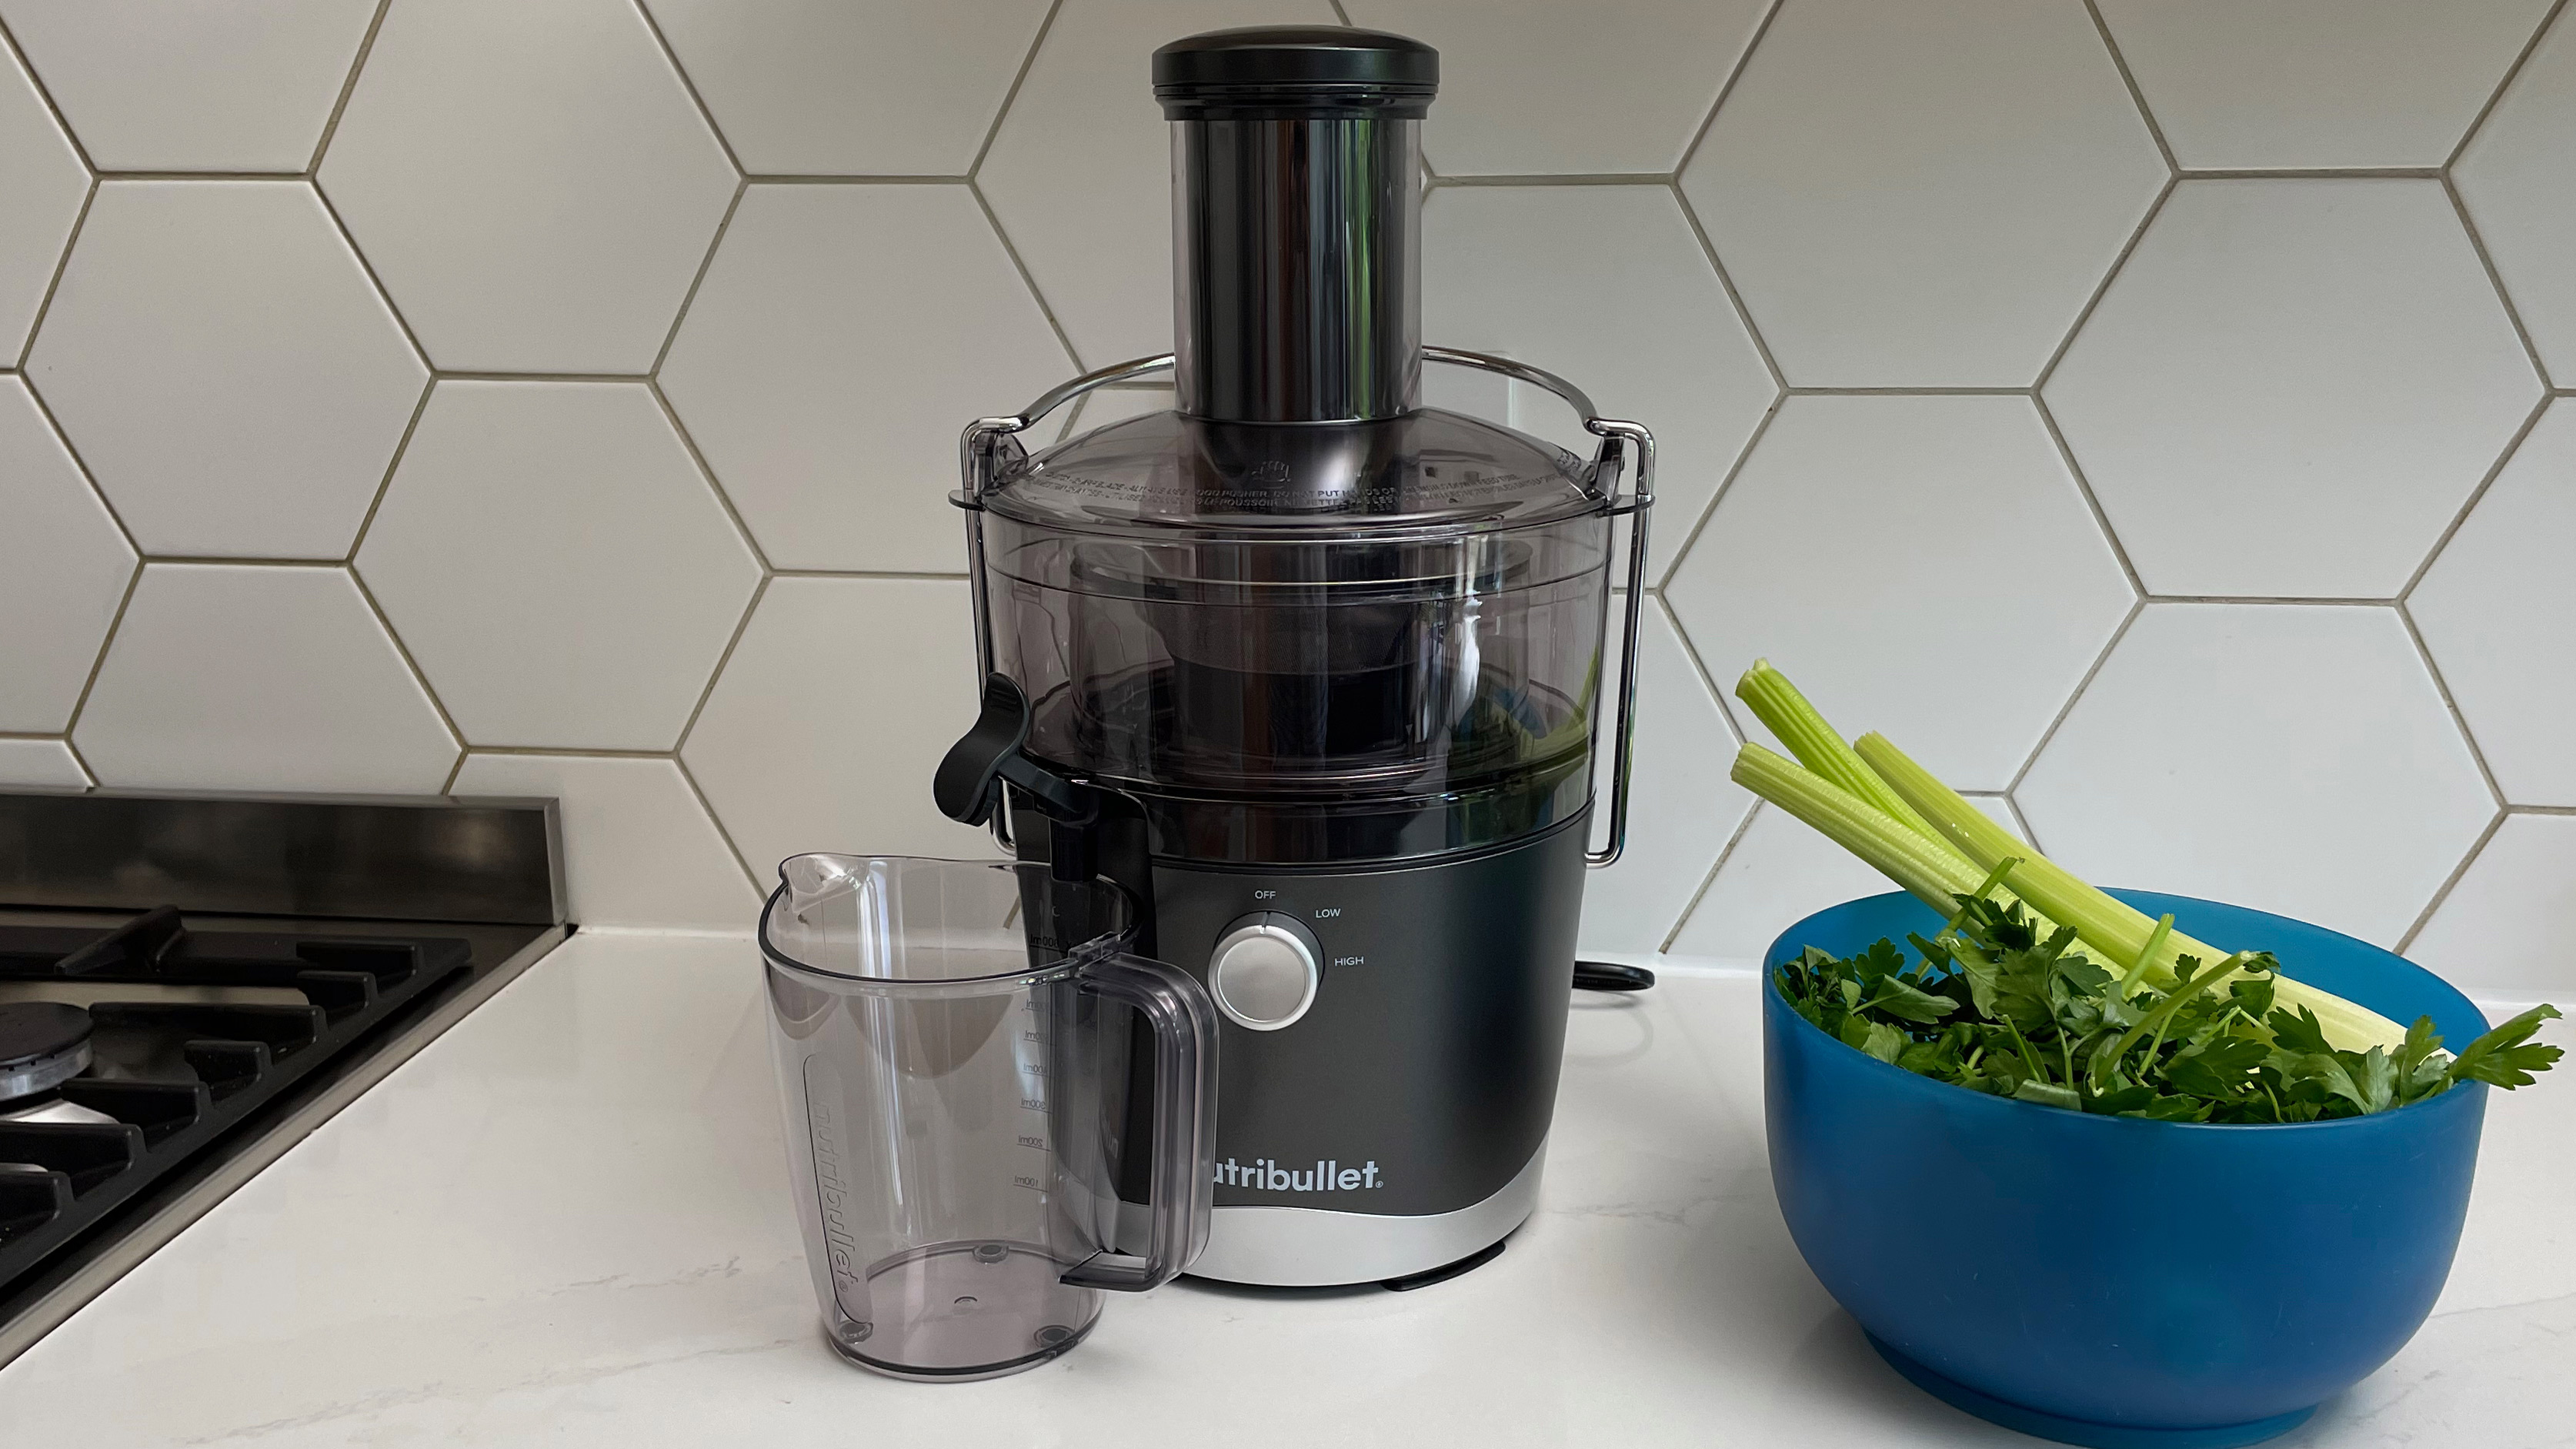 Nutribullet Juicer on a kitchen countetop with a bowl of celery